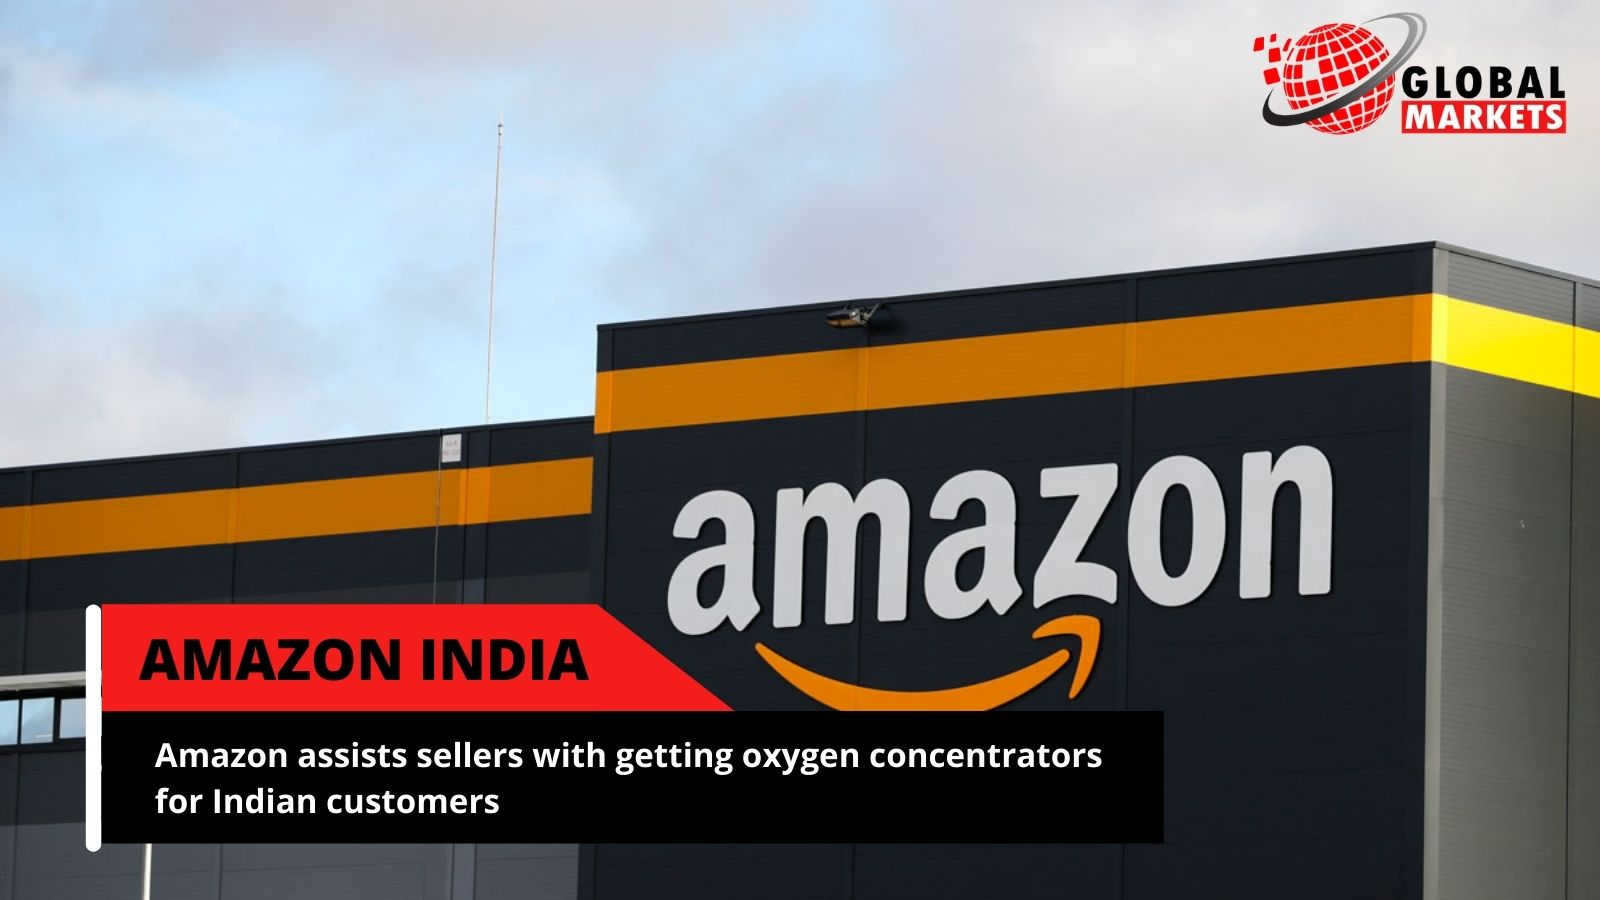 Amazon assists dealers with getting oxygen concentrators for Indian customers